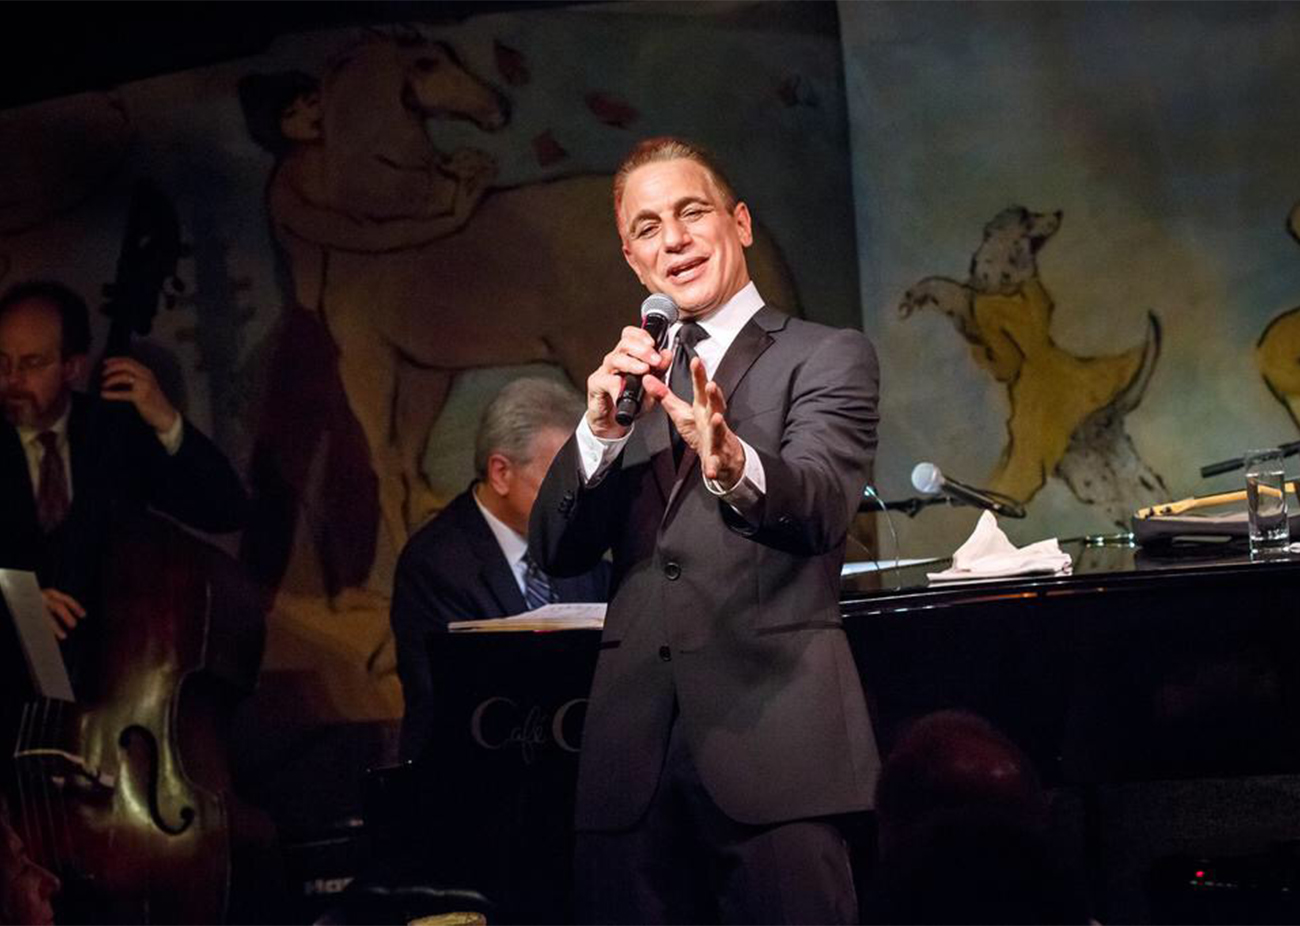 Tony Danza To Be Honored With The Hausman Humanitarian Award